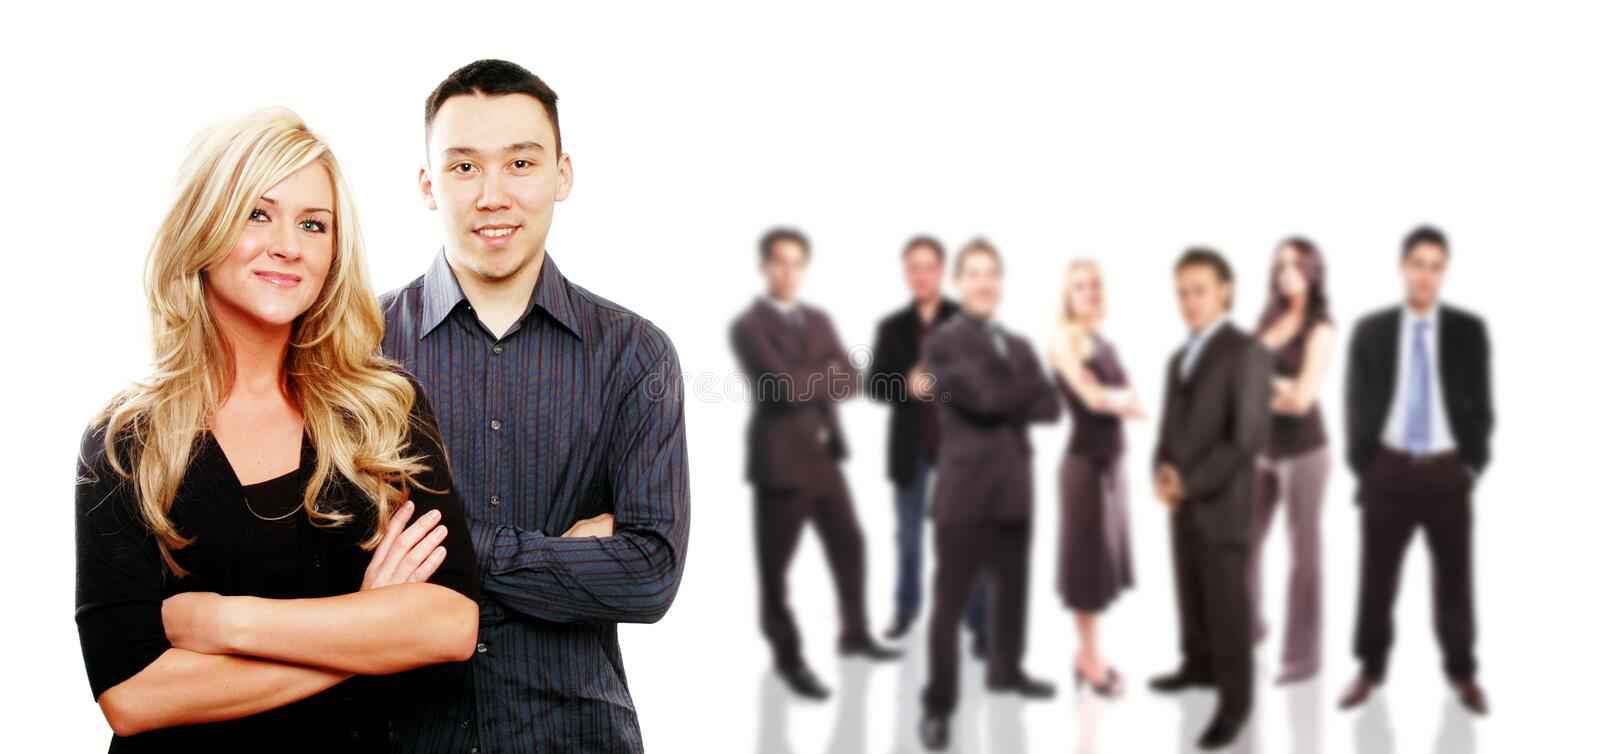 Business team concept. Business team and its members are posing together stock image